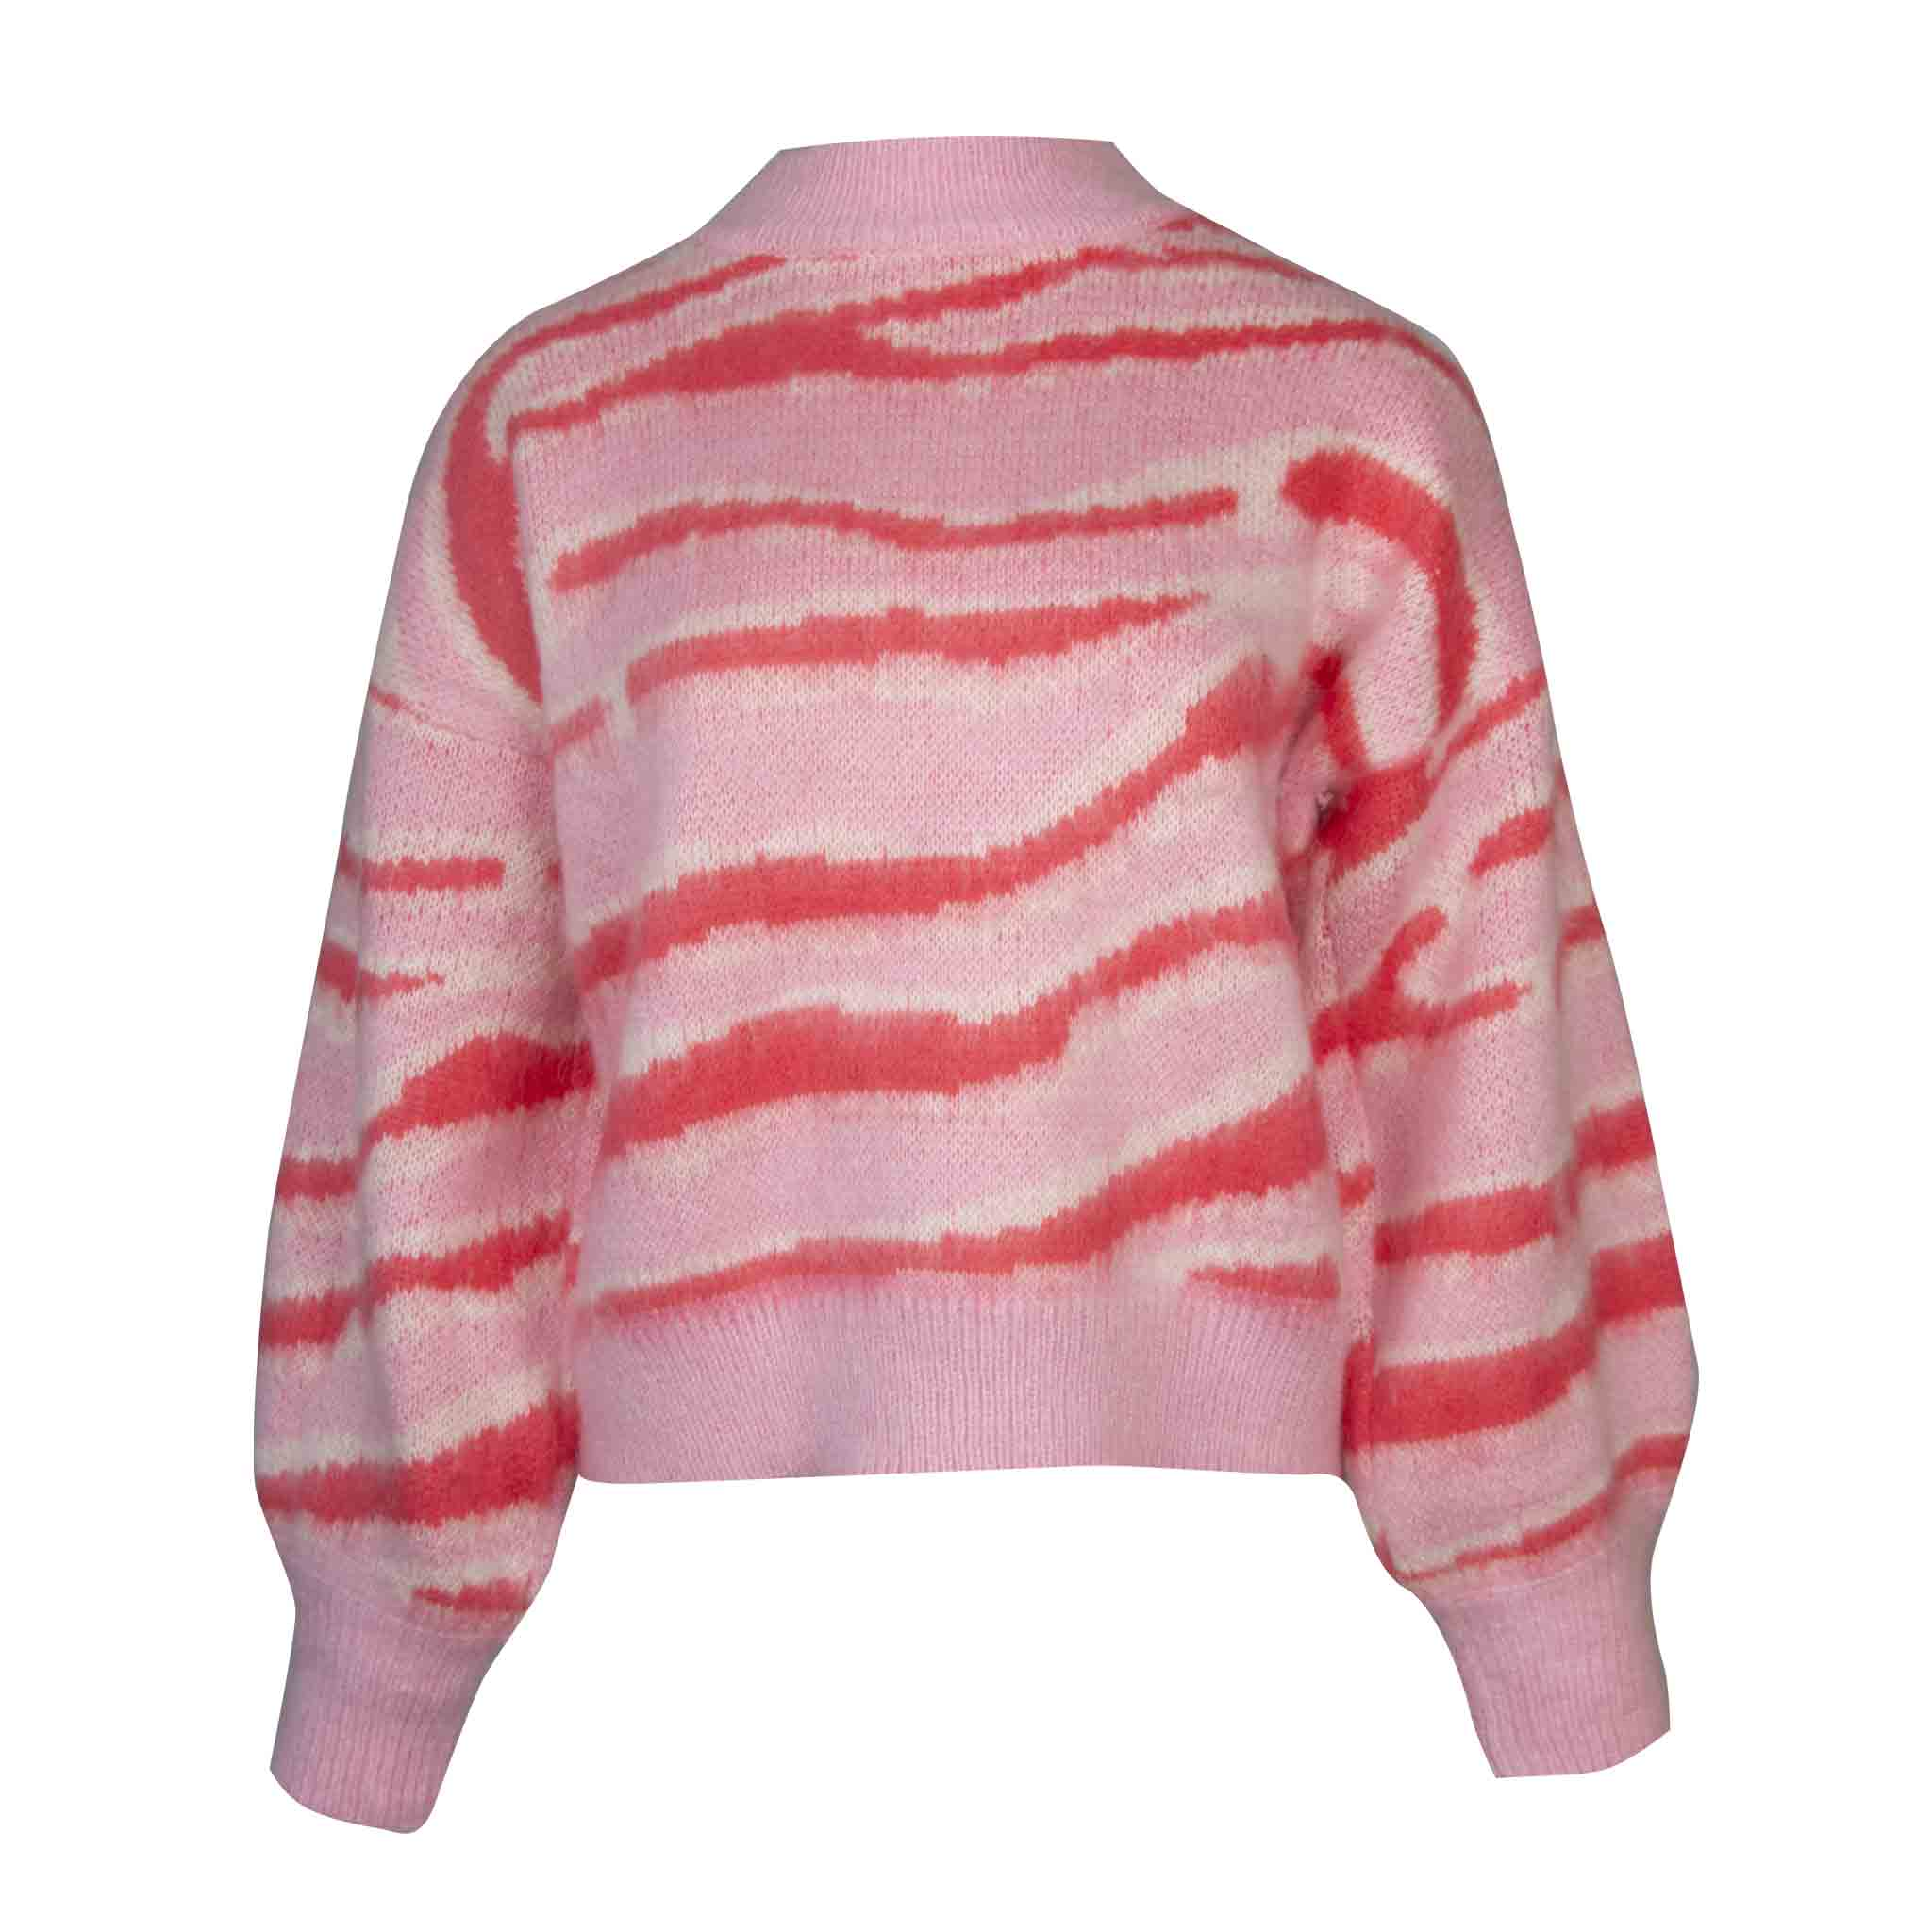 Get the stripe sweater